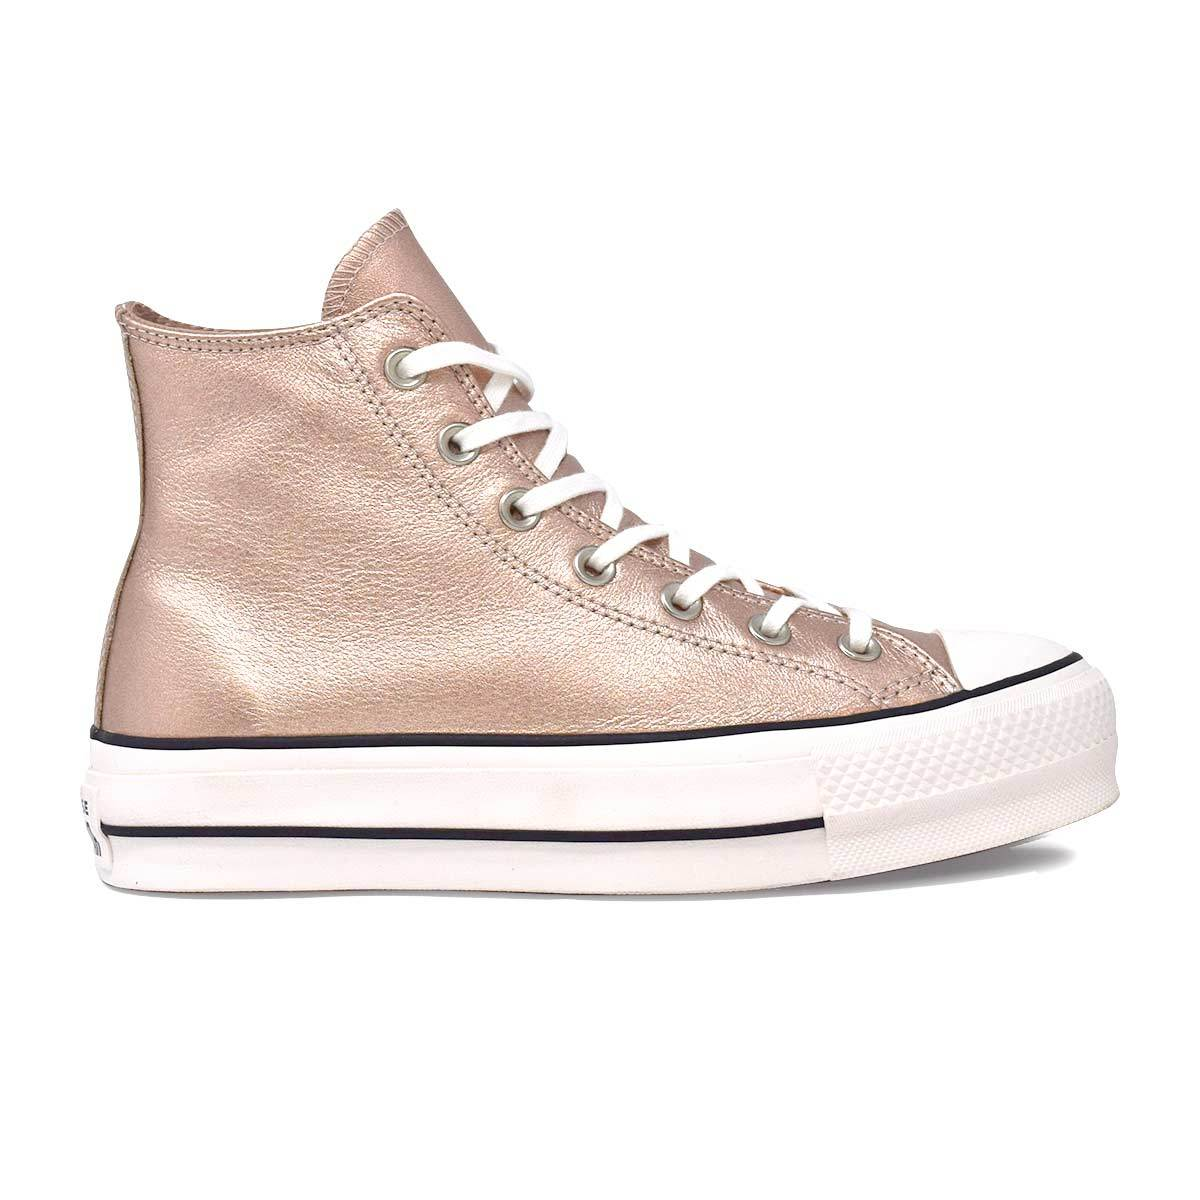 Chuck Taylor All Star Lift Metallic Leather High Top